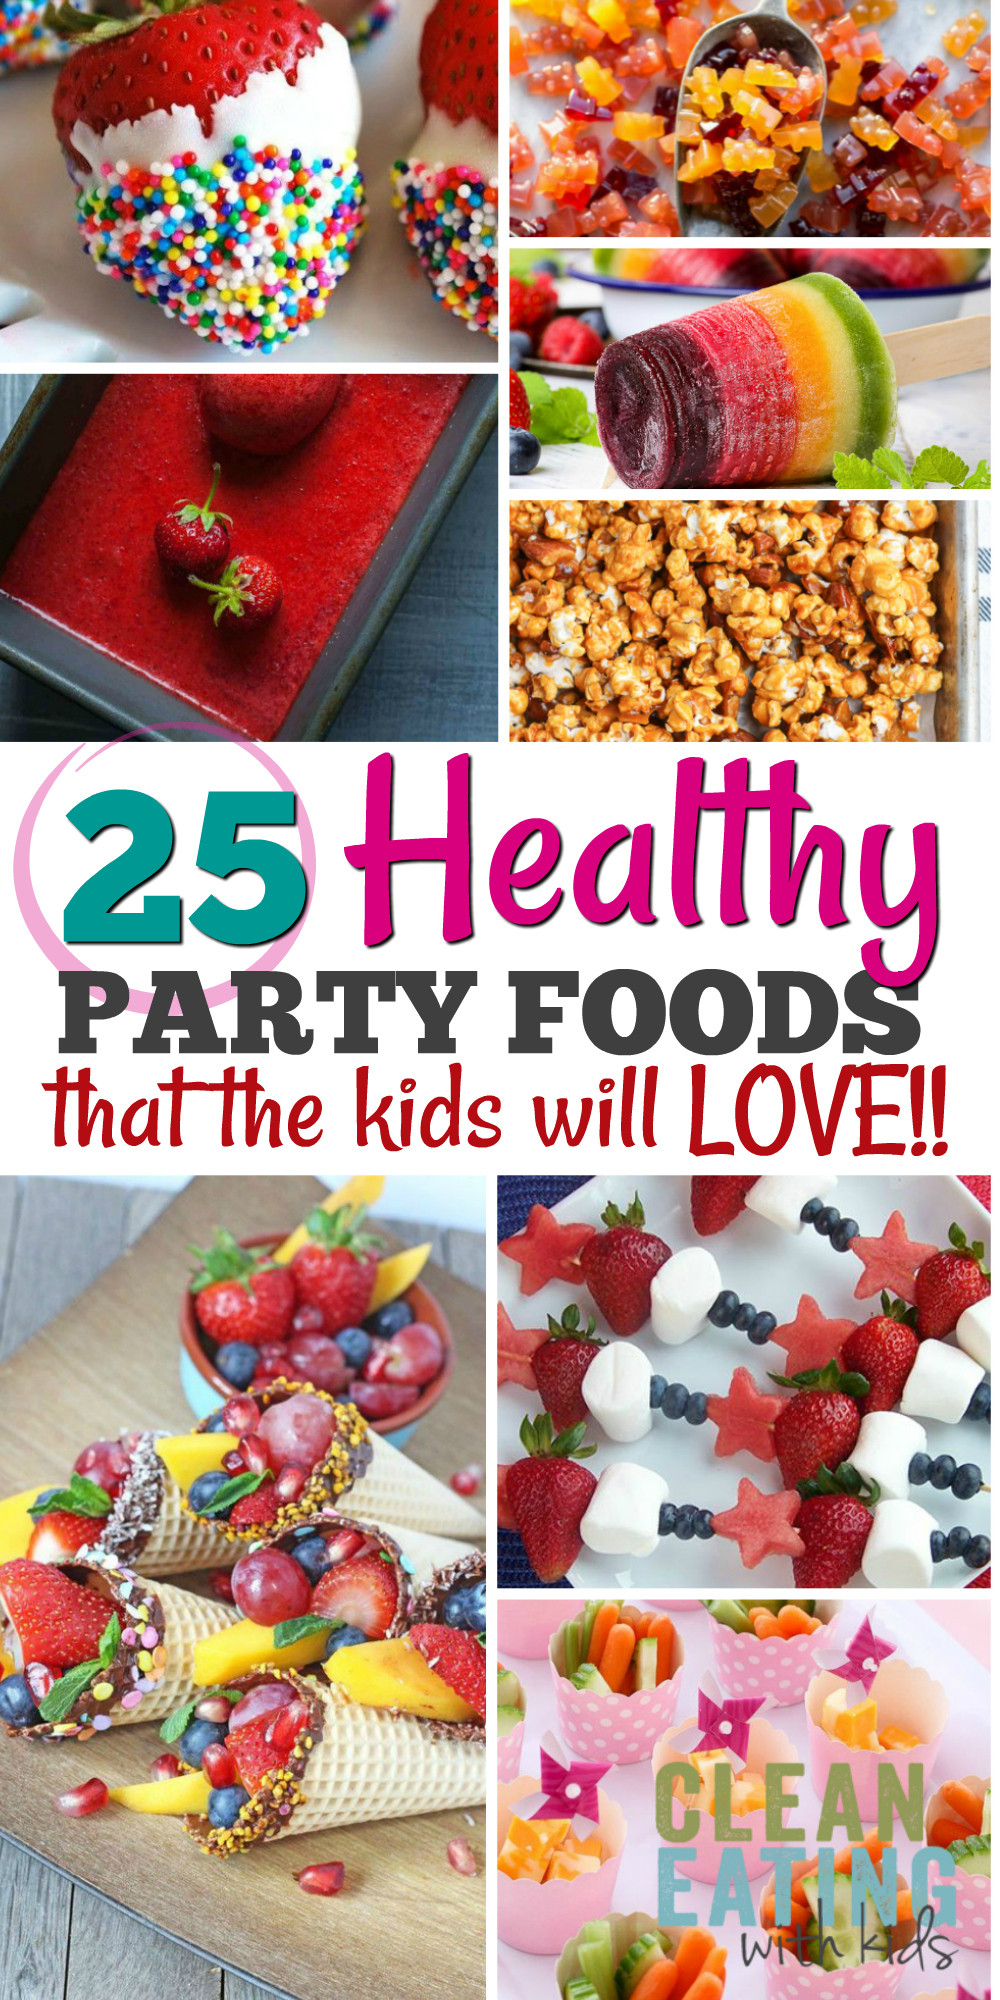 Healthy Birthday Party Snacks  25 Healthy Birthday Party Food Ideas Clean Eating with kids